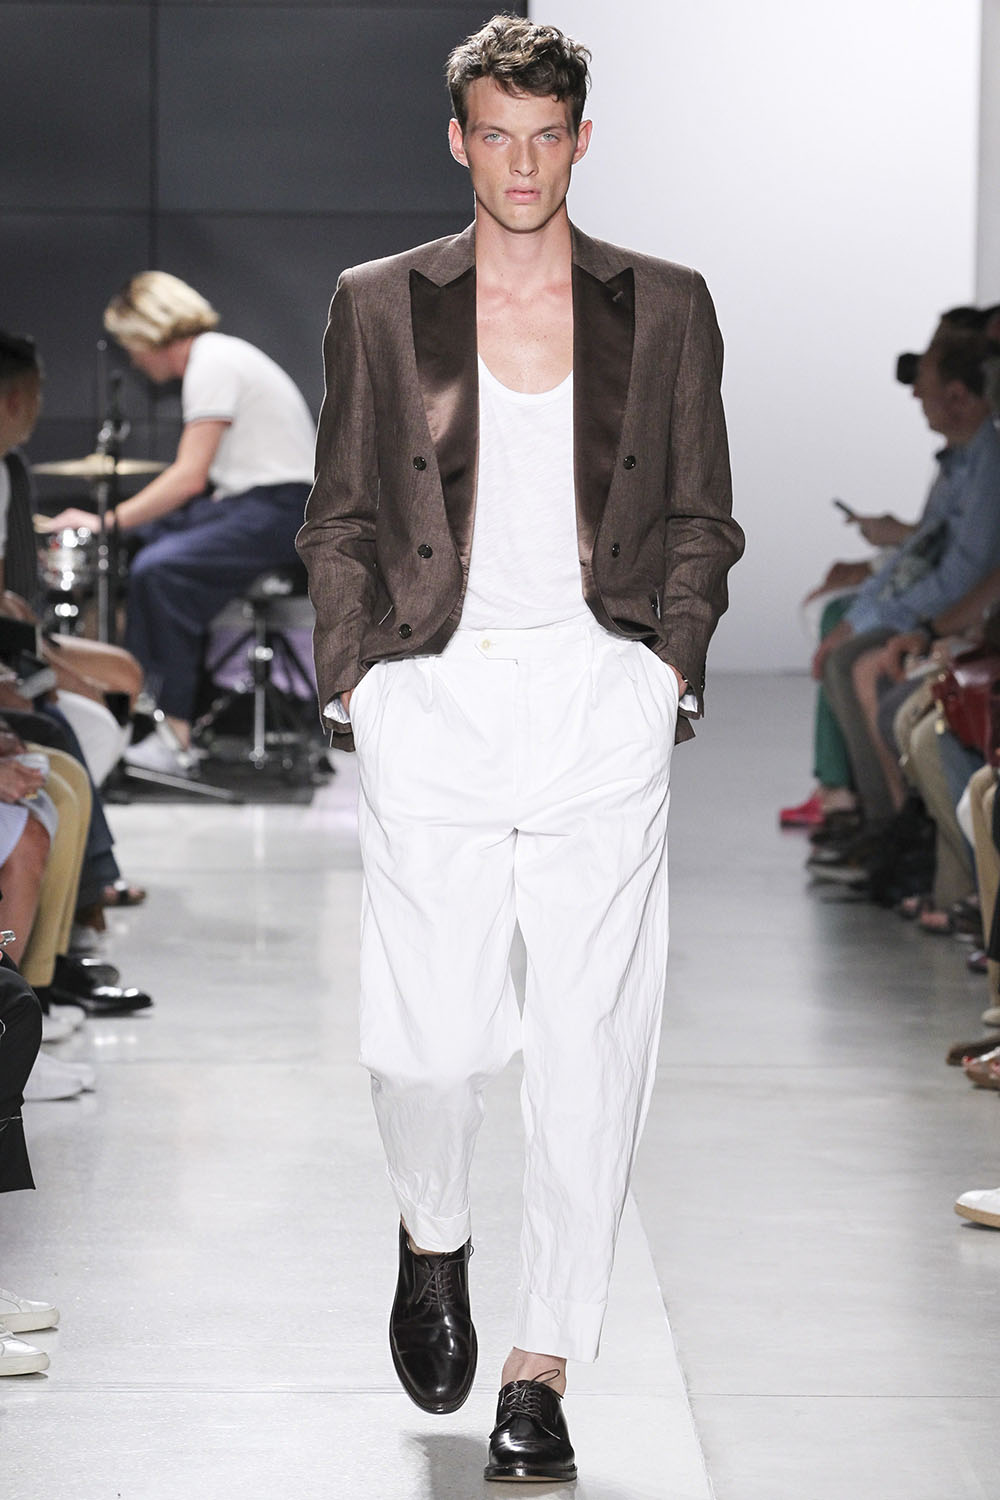 Todd Snyder SS18 Collection. Male model walking the catwalk at T